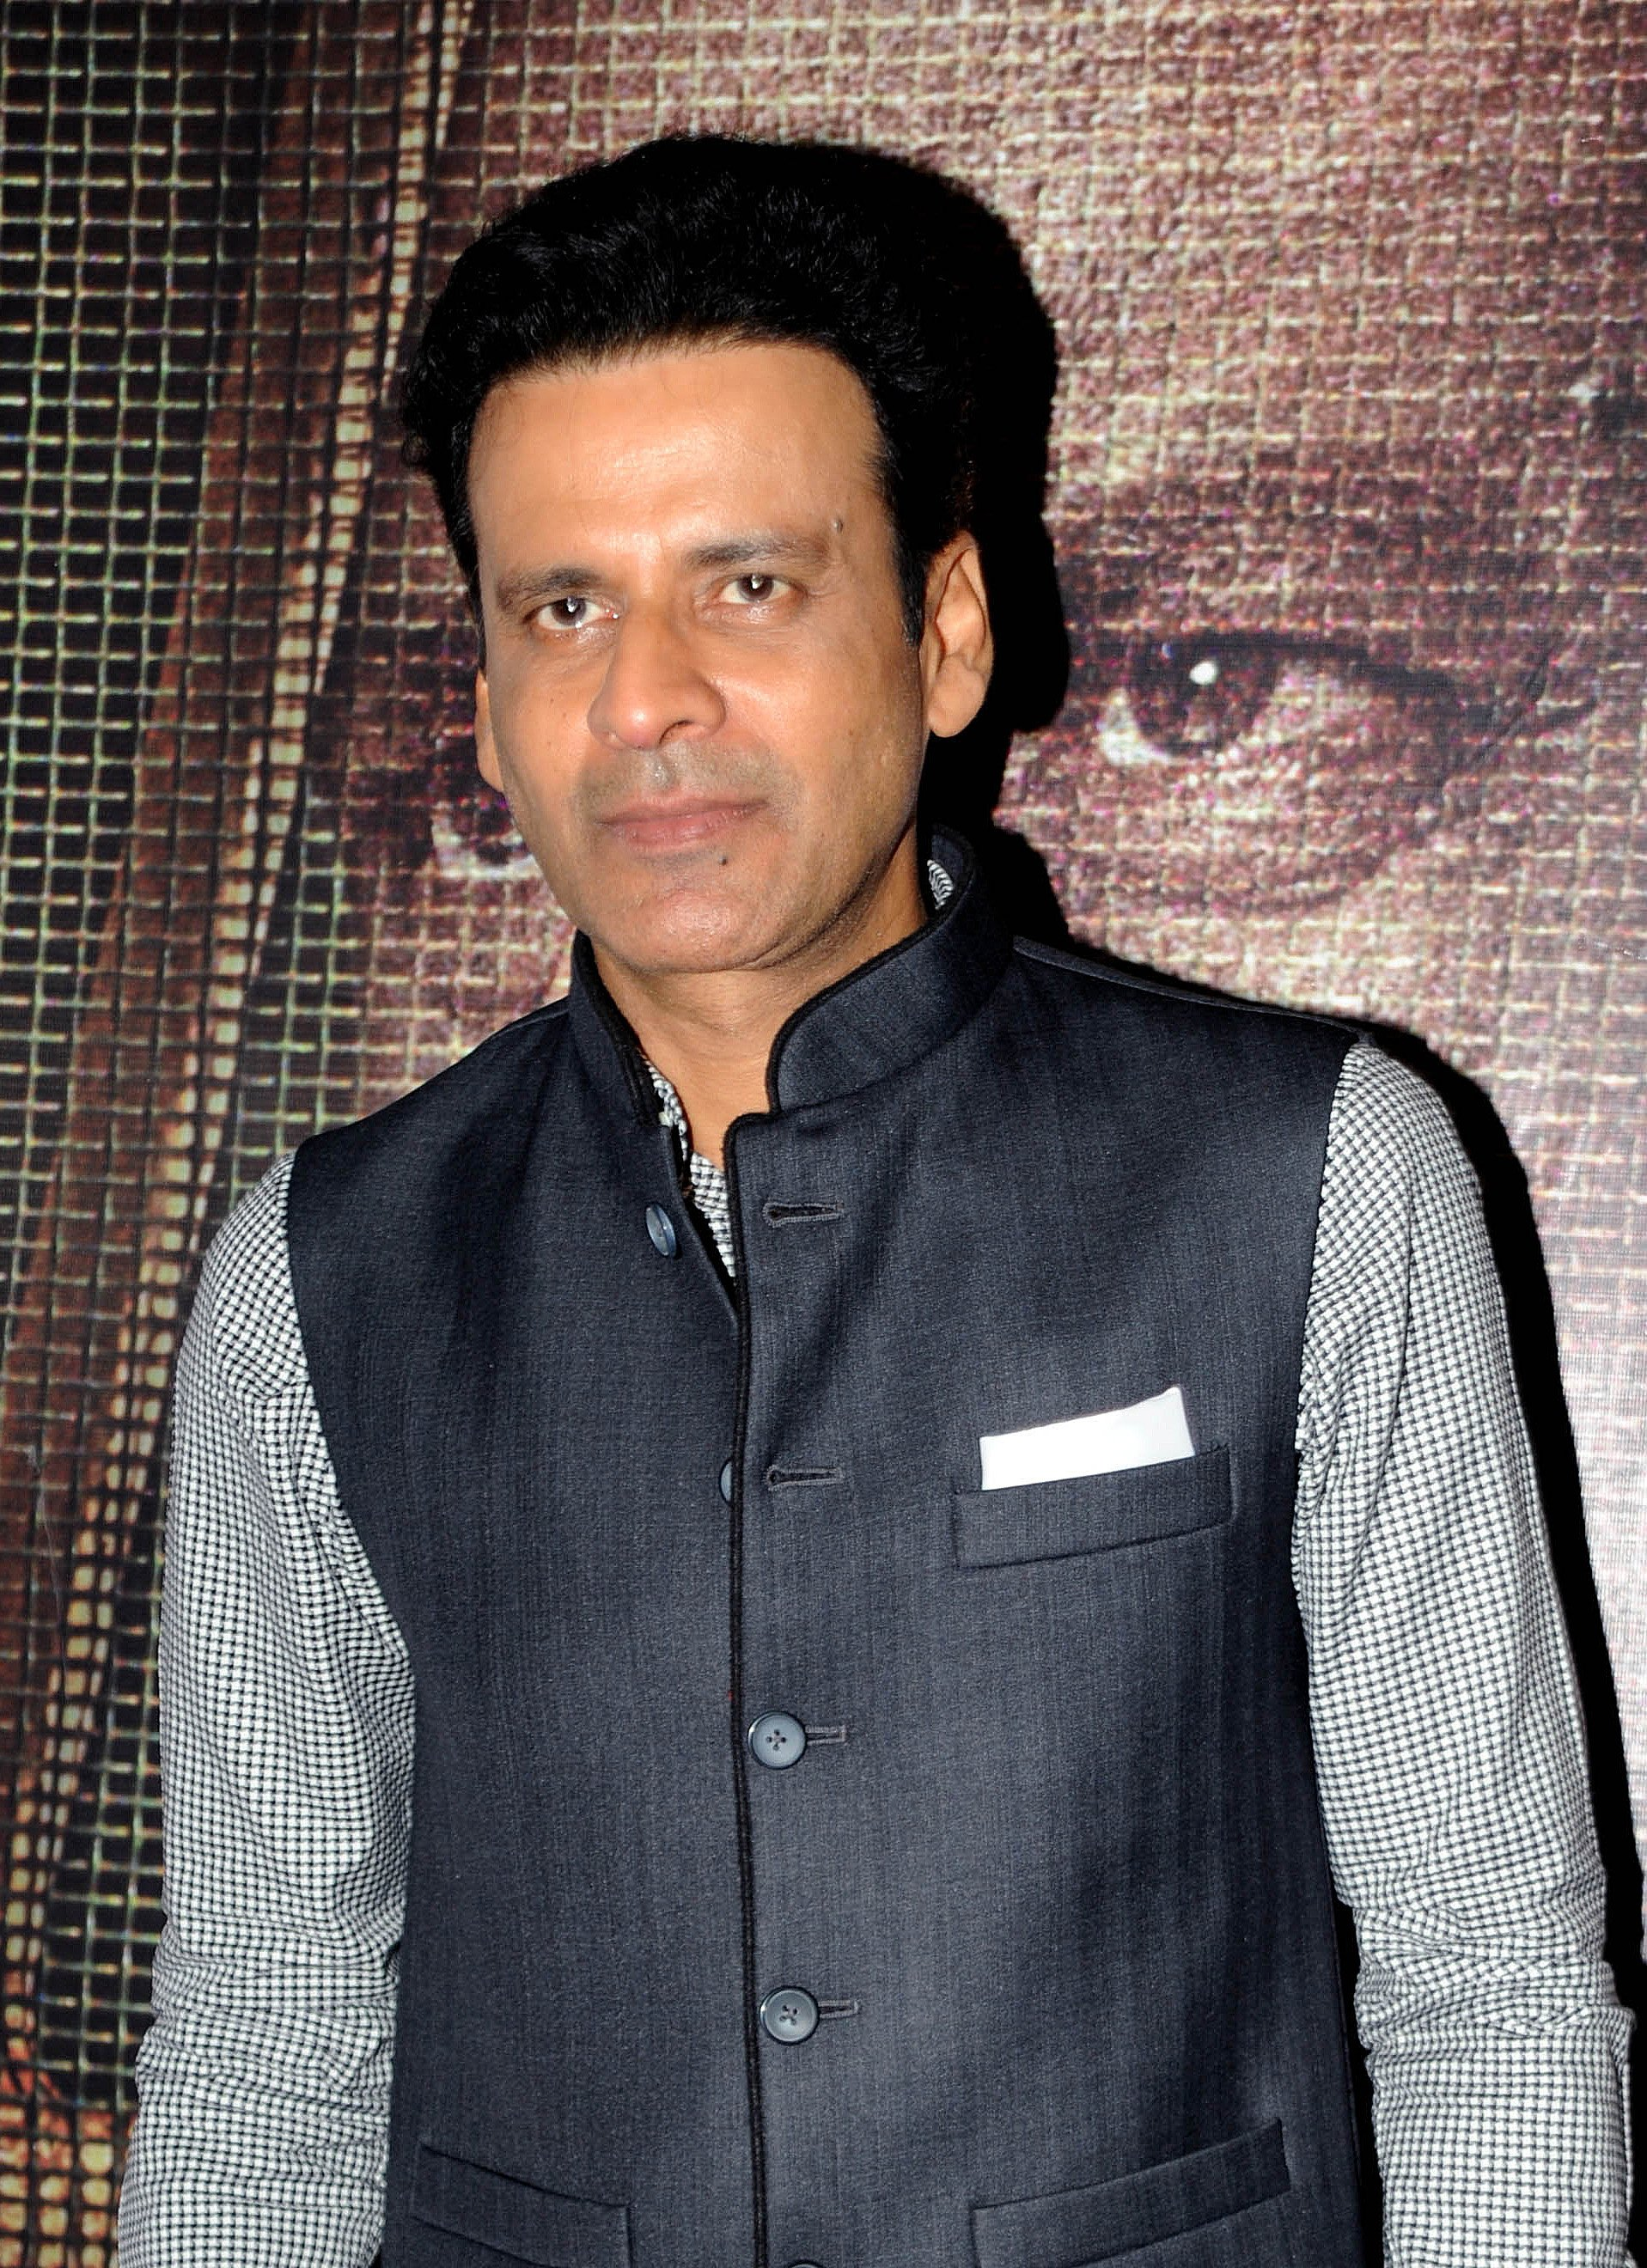 Manoj Bajpayee Says He Has Made His Career Out Of 'Flop' Films